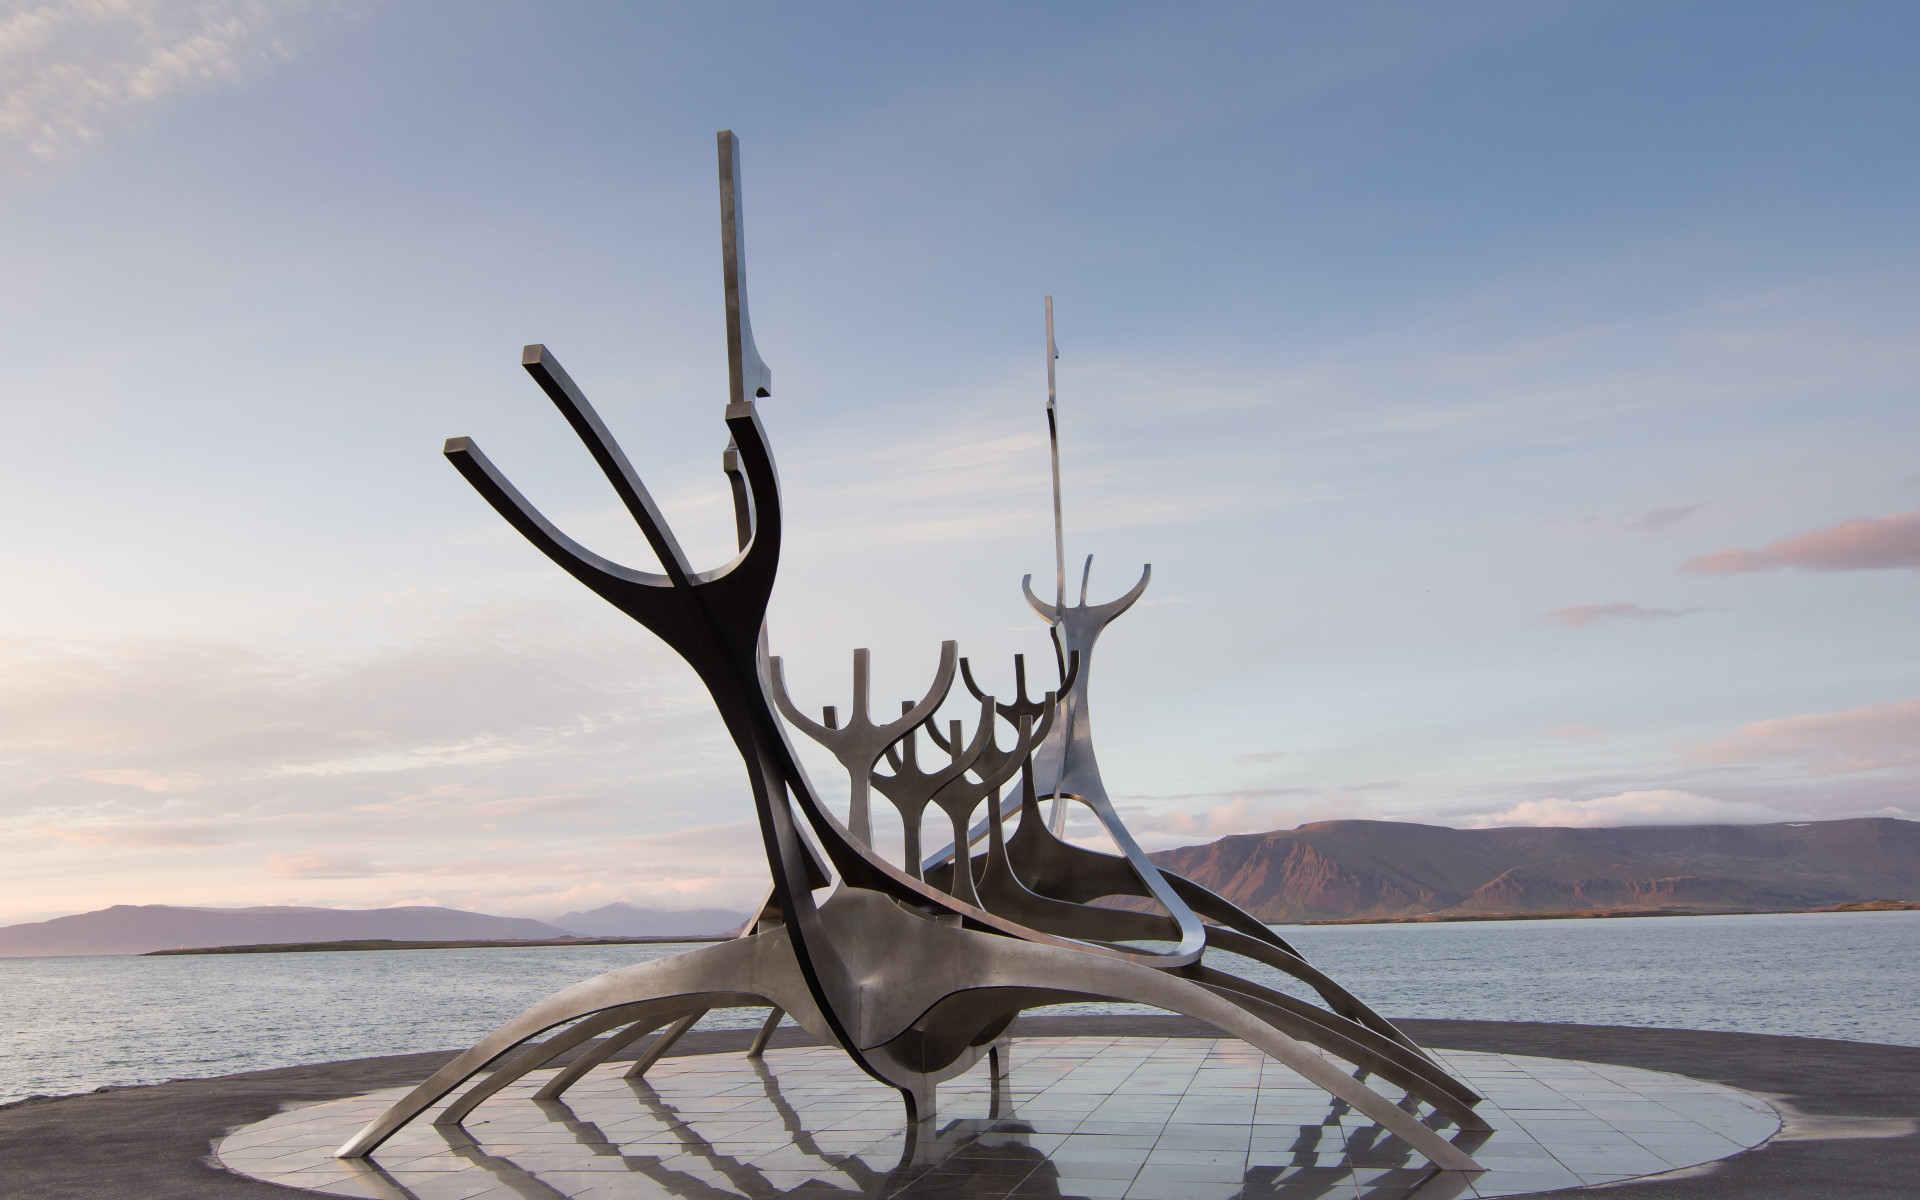 The Sun Voyager from Reykjavik, Iceland | 1920x1200 wallpaper